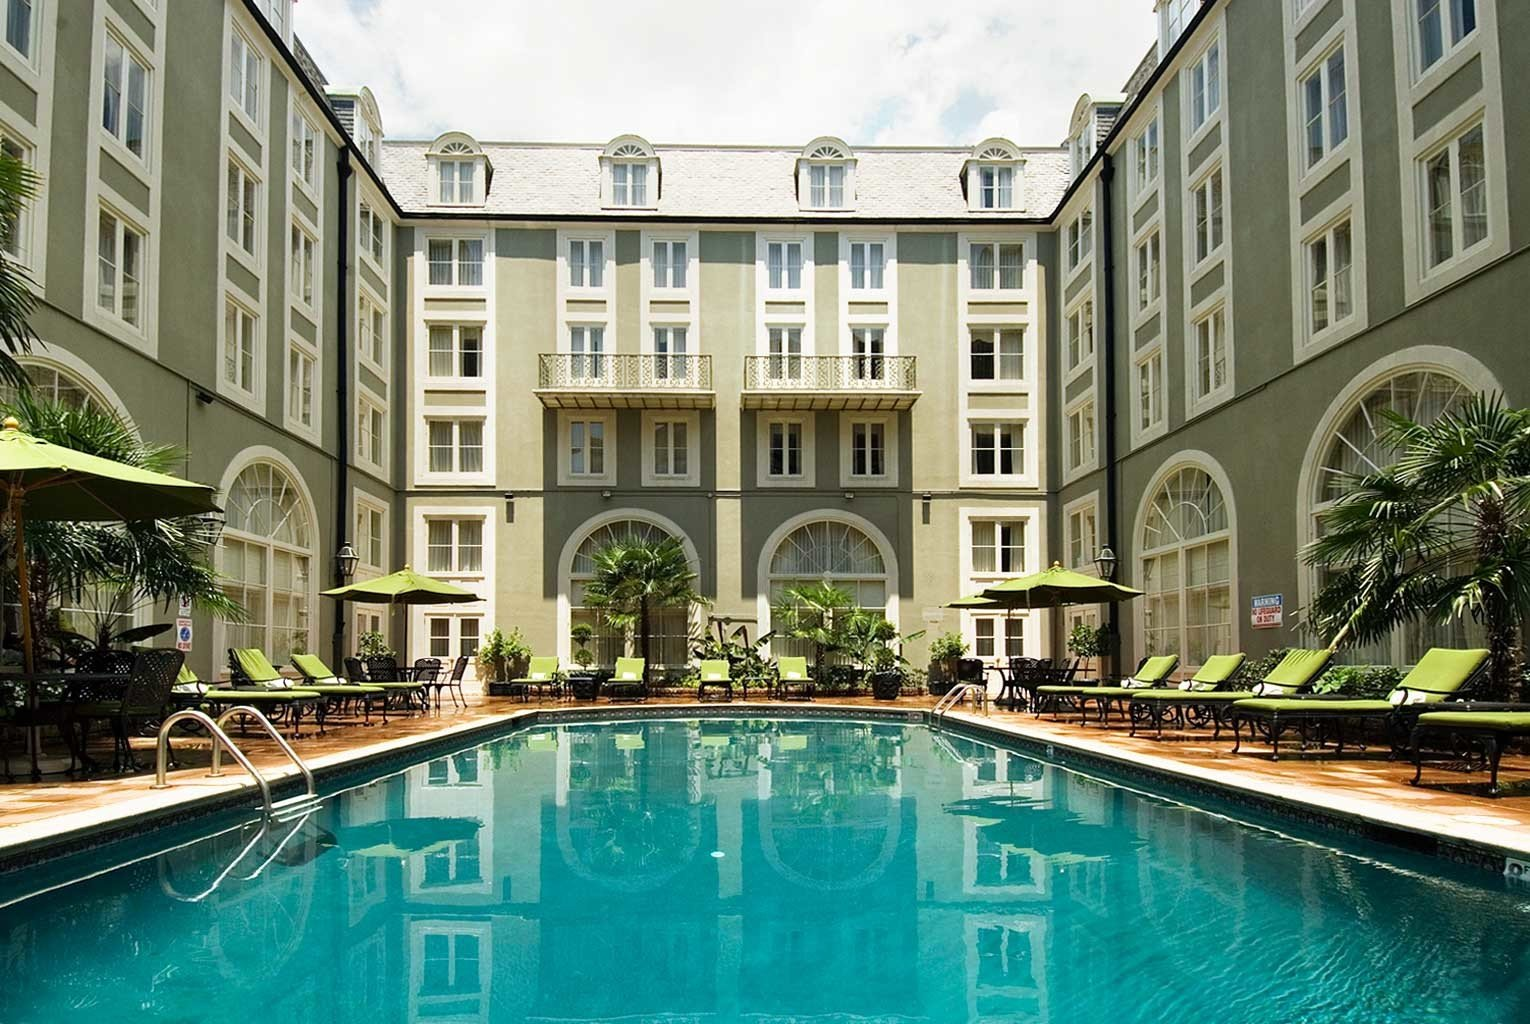 Architecture Buildings Elegant Exterior Luxury Pool building property swimming pool condominium mansion reflecting pool palace home Courtyard Resort waterway Villa apartment building